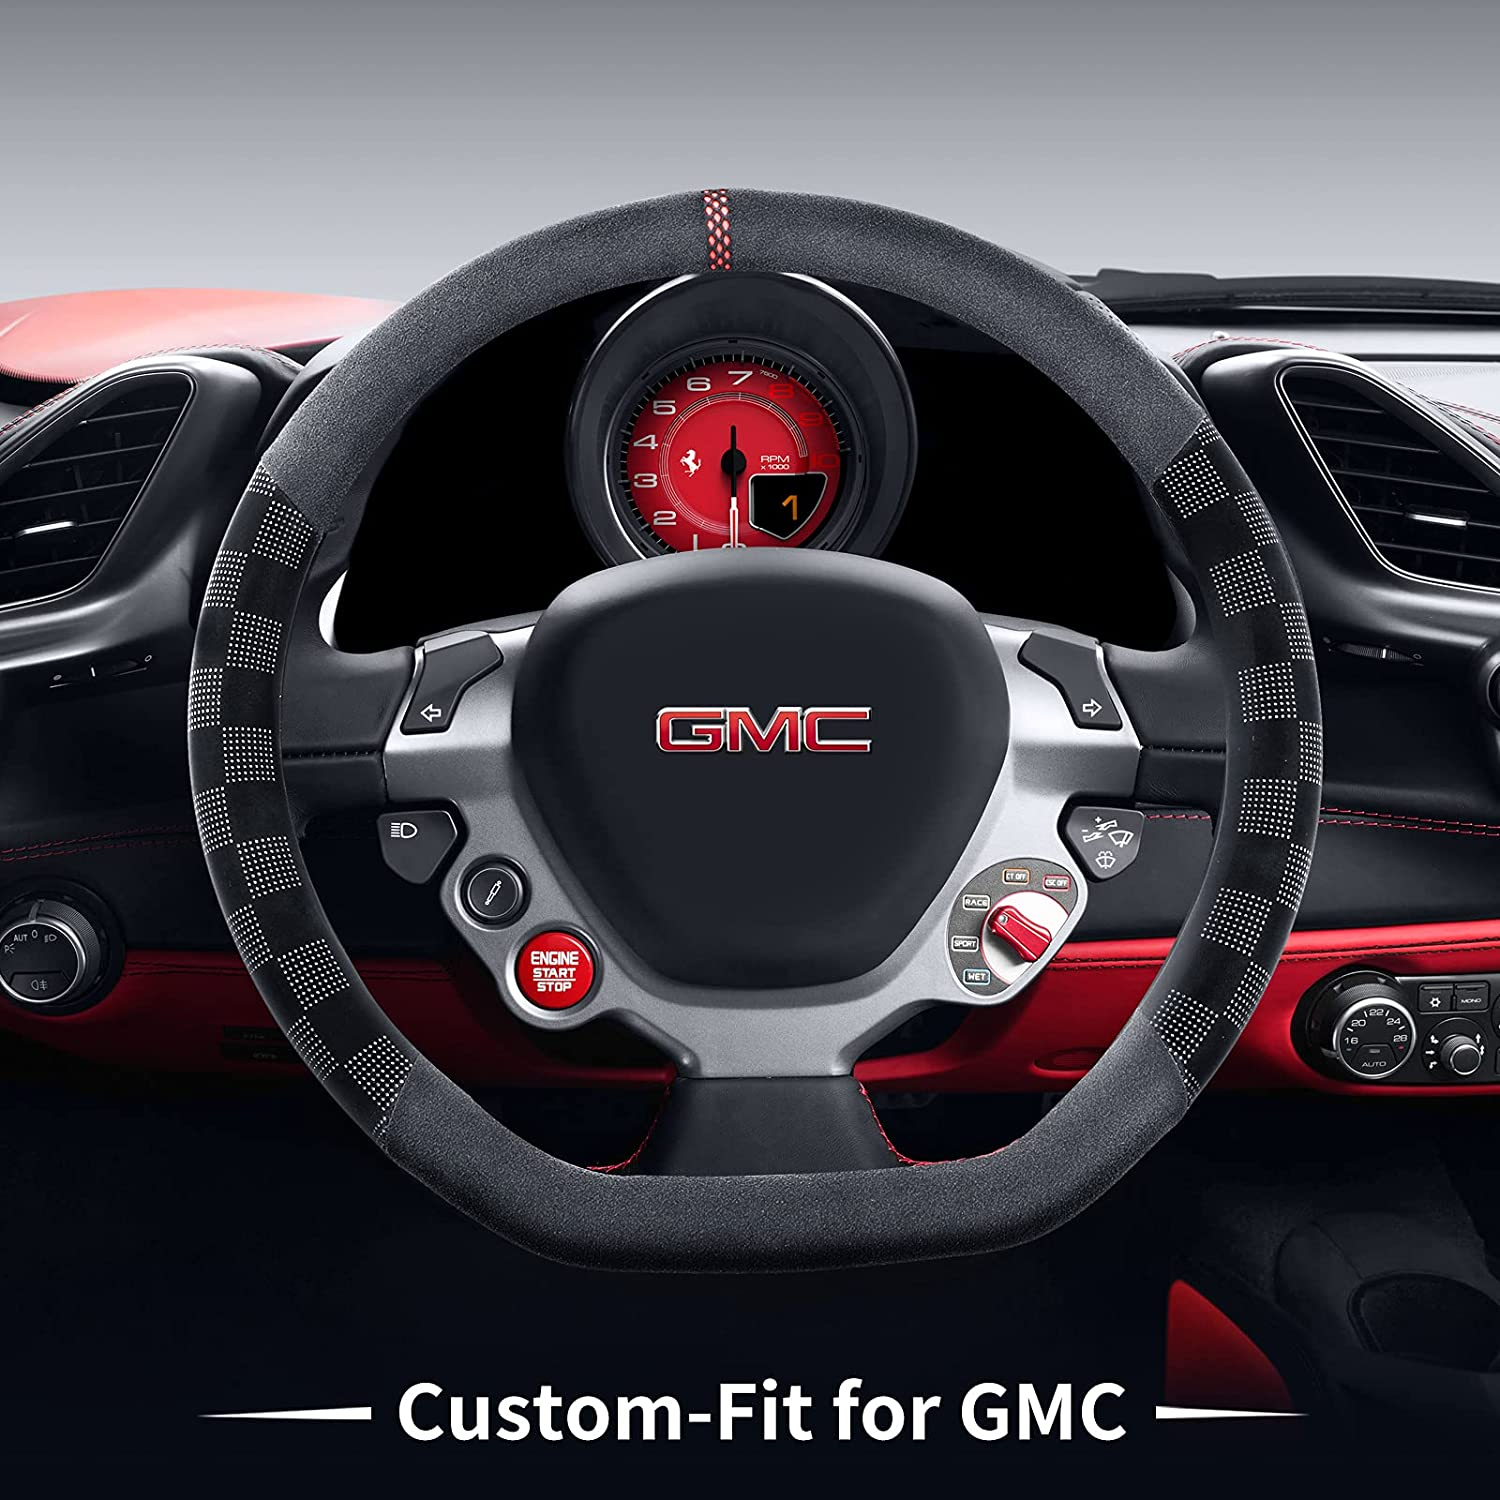 Car Steering Wheel Cover for Microfiber GMC Non-Slip Route Washington Safety and trust Mall Deer